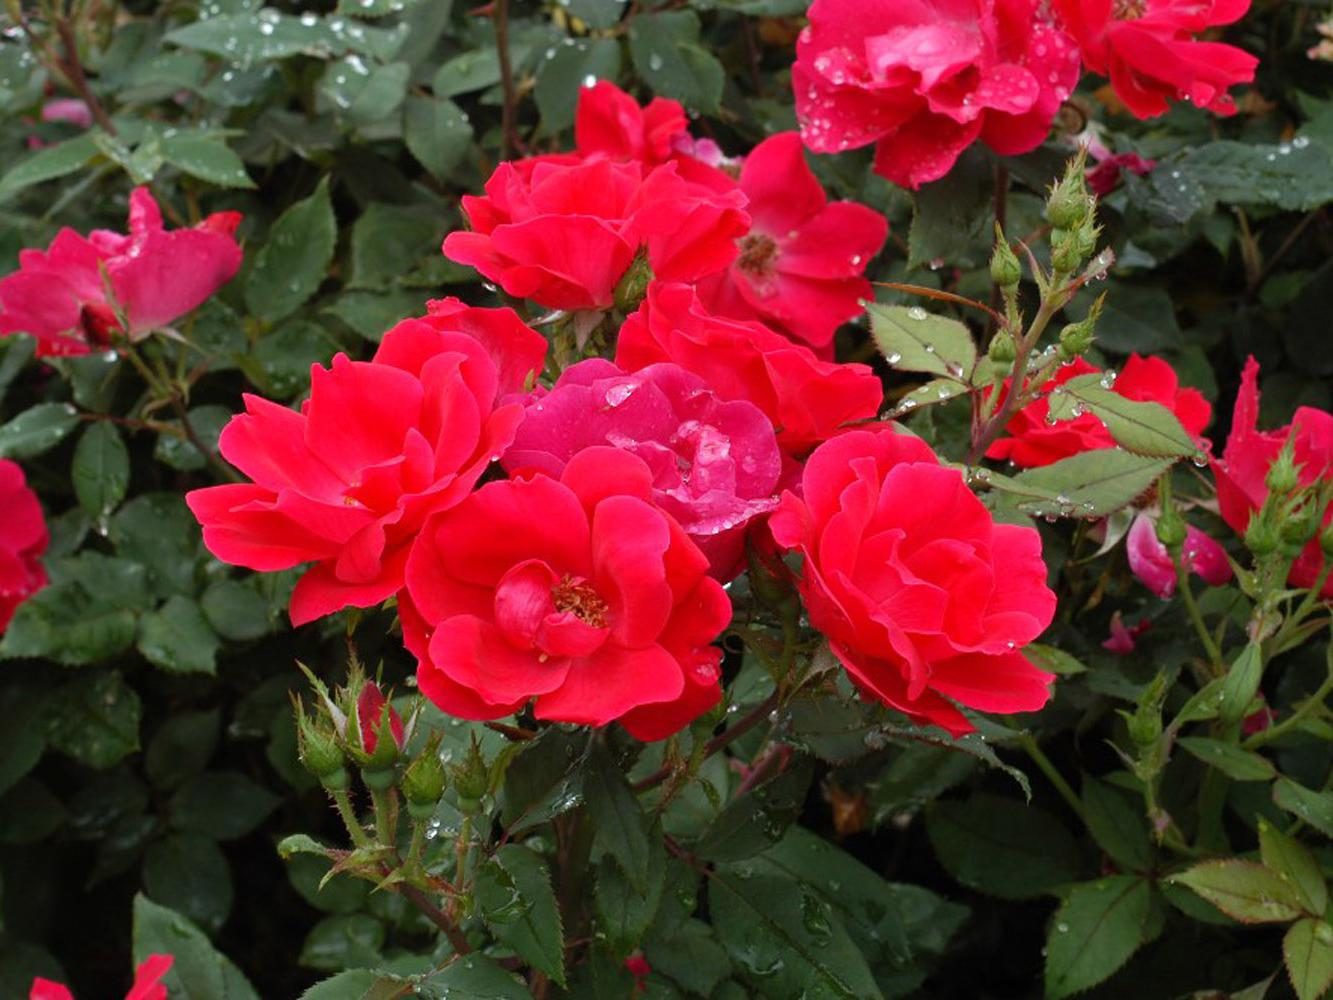 Knock Out roses have been added to this year's garden at the Truck Crops Experiment Station in Crystal Springs. You'll see them blooming as well as have the opportunity to buy them from vendors during the 27th annual Fall Flower and Garden Fest.